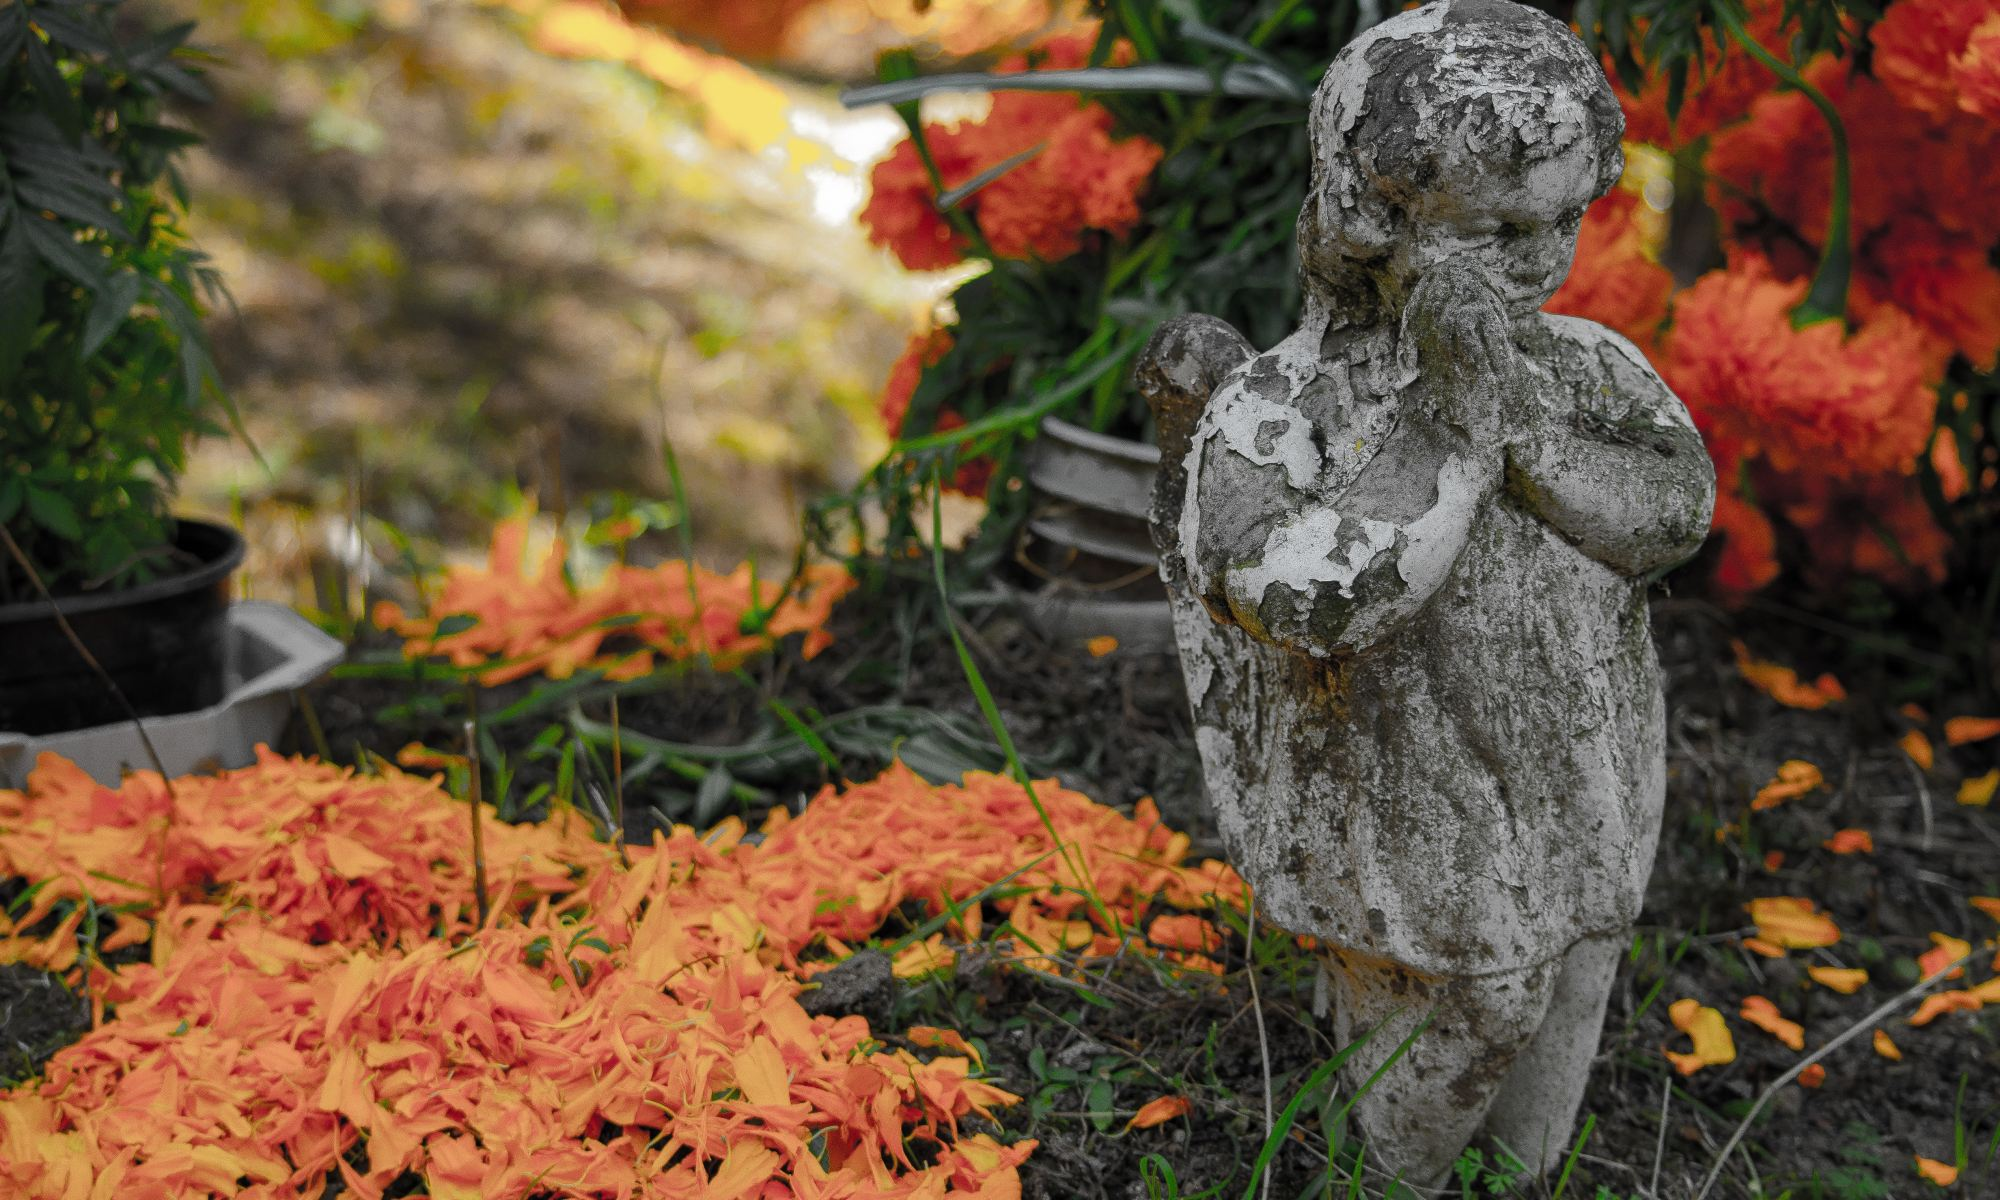 Praying angel statue next to orange flowers outdoors